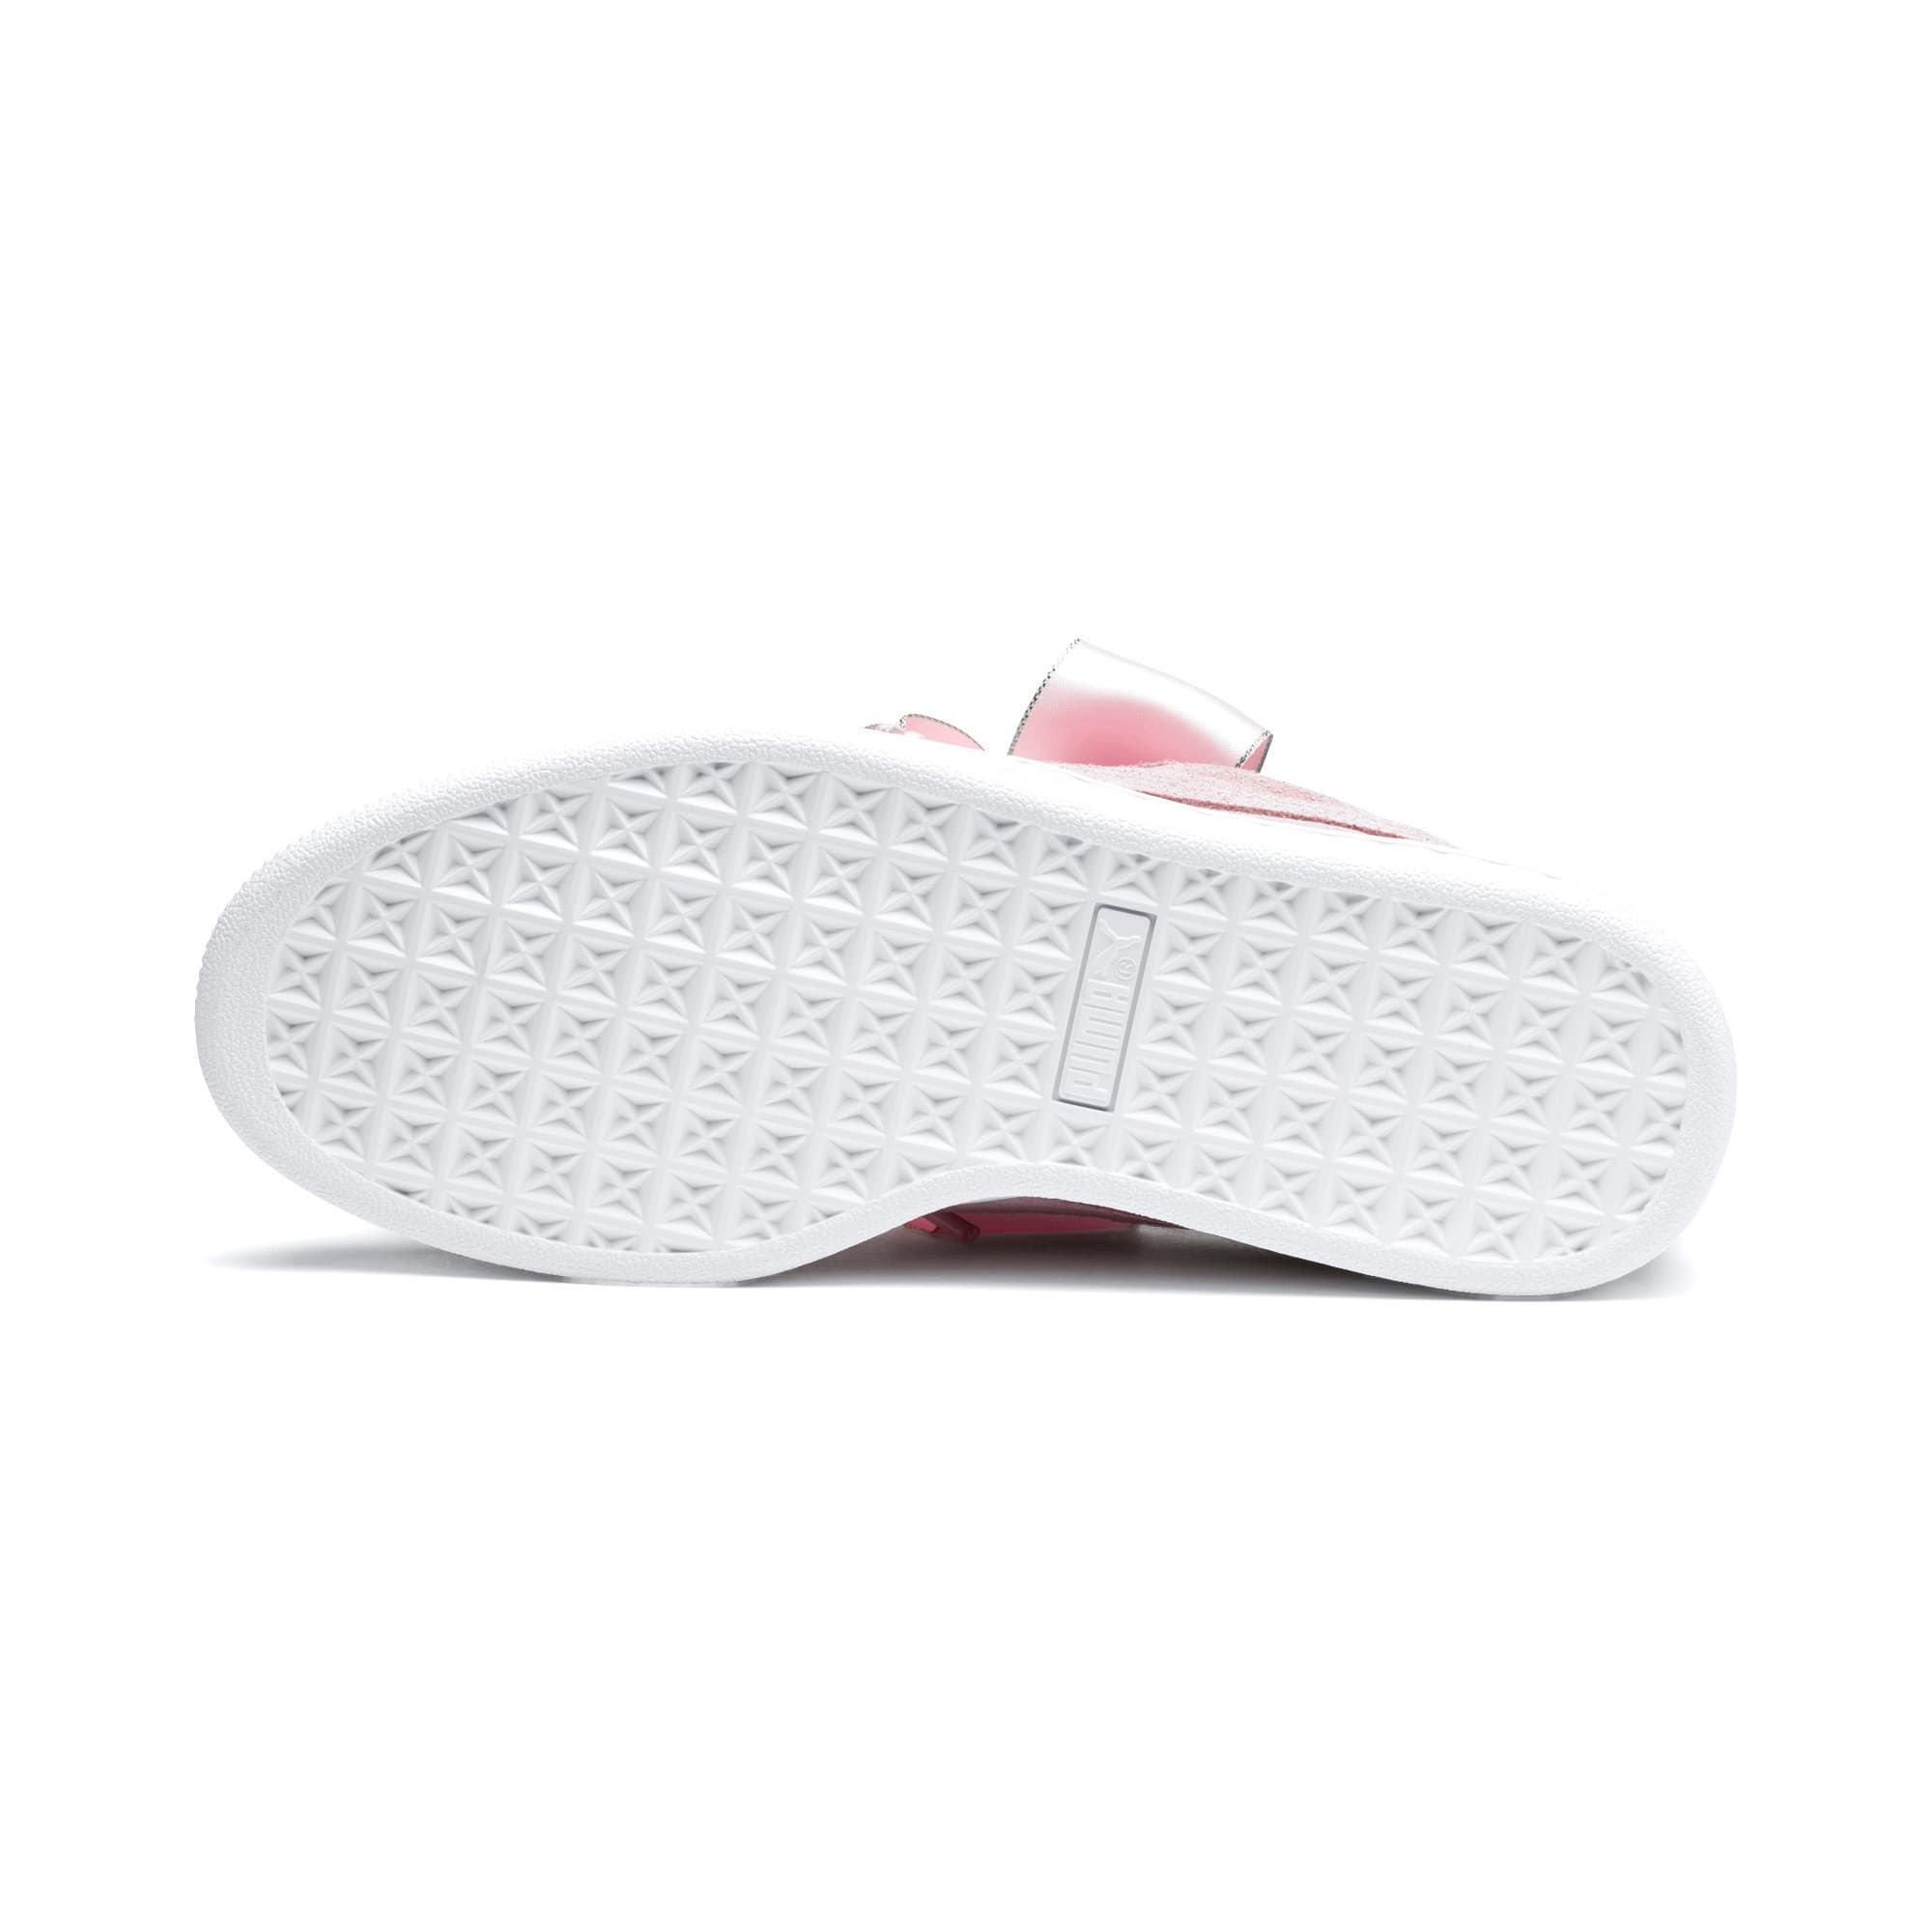 Thumbnail 5 of Suede Heart Galaxy Women's Shoes, Pale Pink-Puma Silver, medium-IND